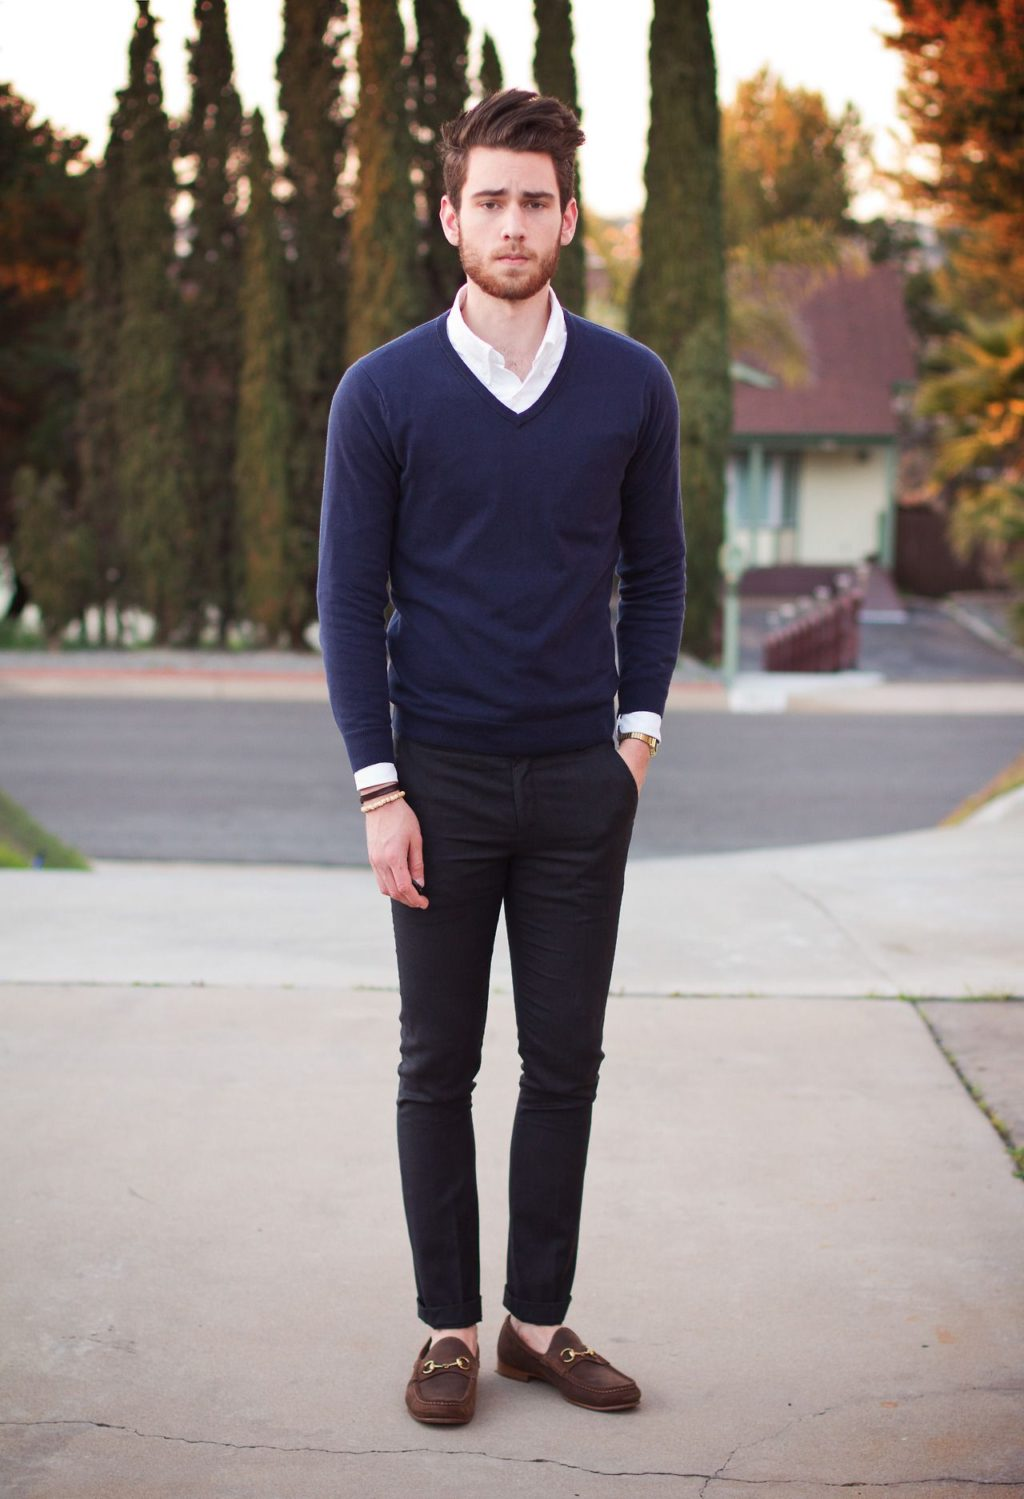 Sweater-and-long-sleeve-button-down-2-1024x1499 120+ Fashion Trends and Looks for College Students in 2021